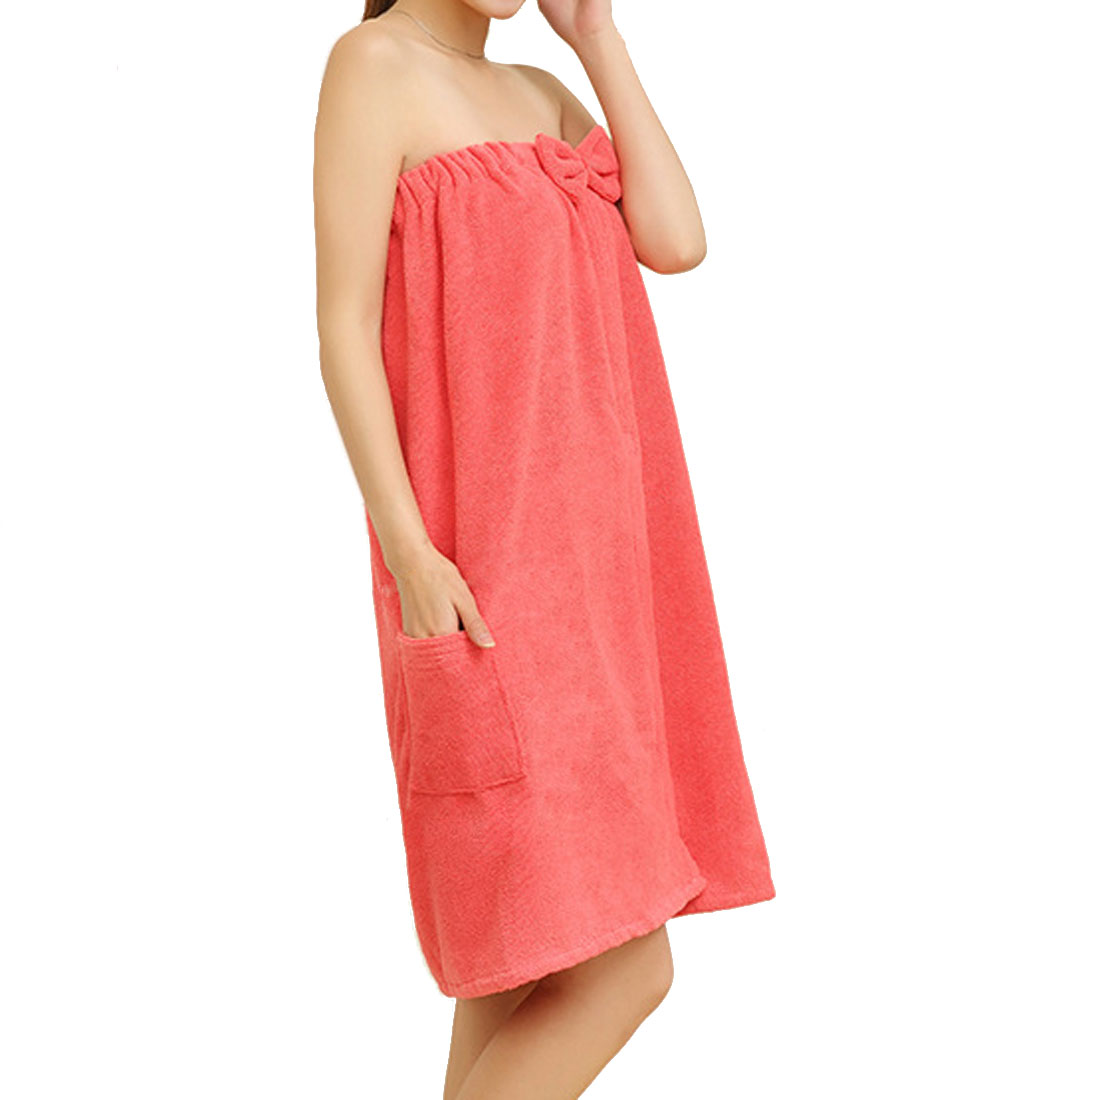 Lady Microfiber Elastic Bowknot Beach Swimming Shower Bath Towel Wrap Skirt Washcloth Coral Pink